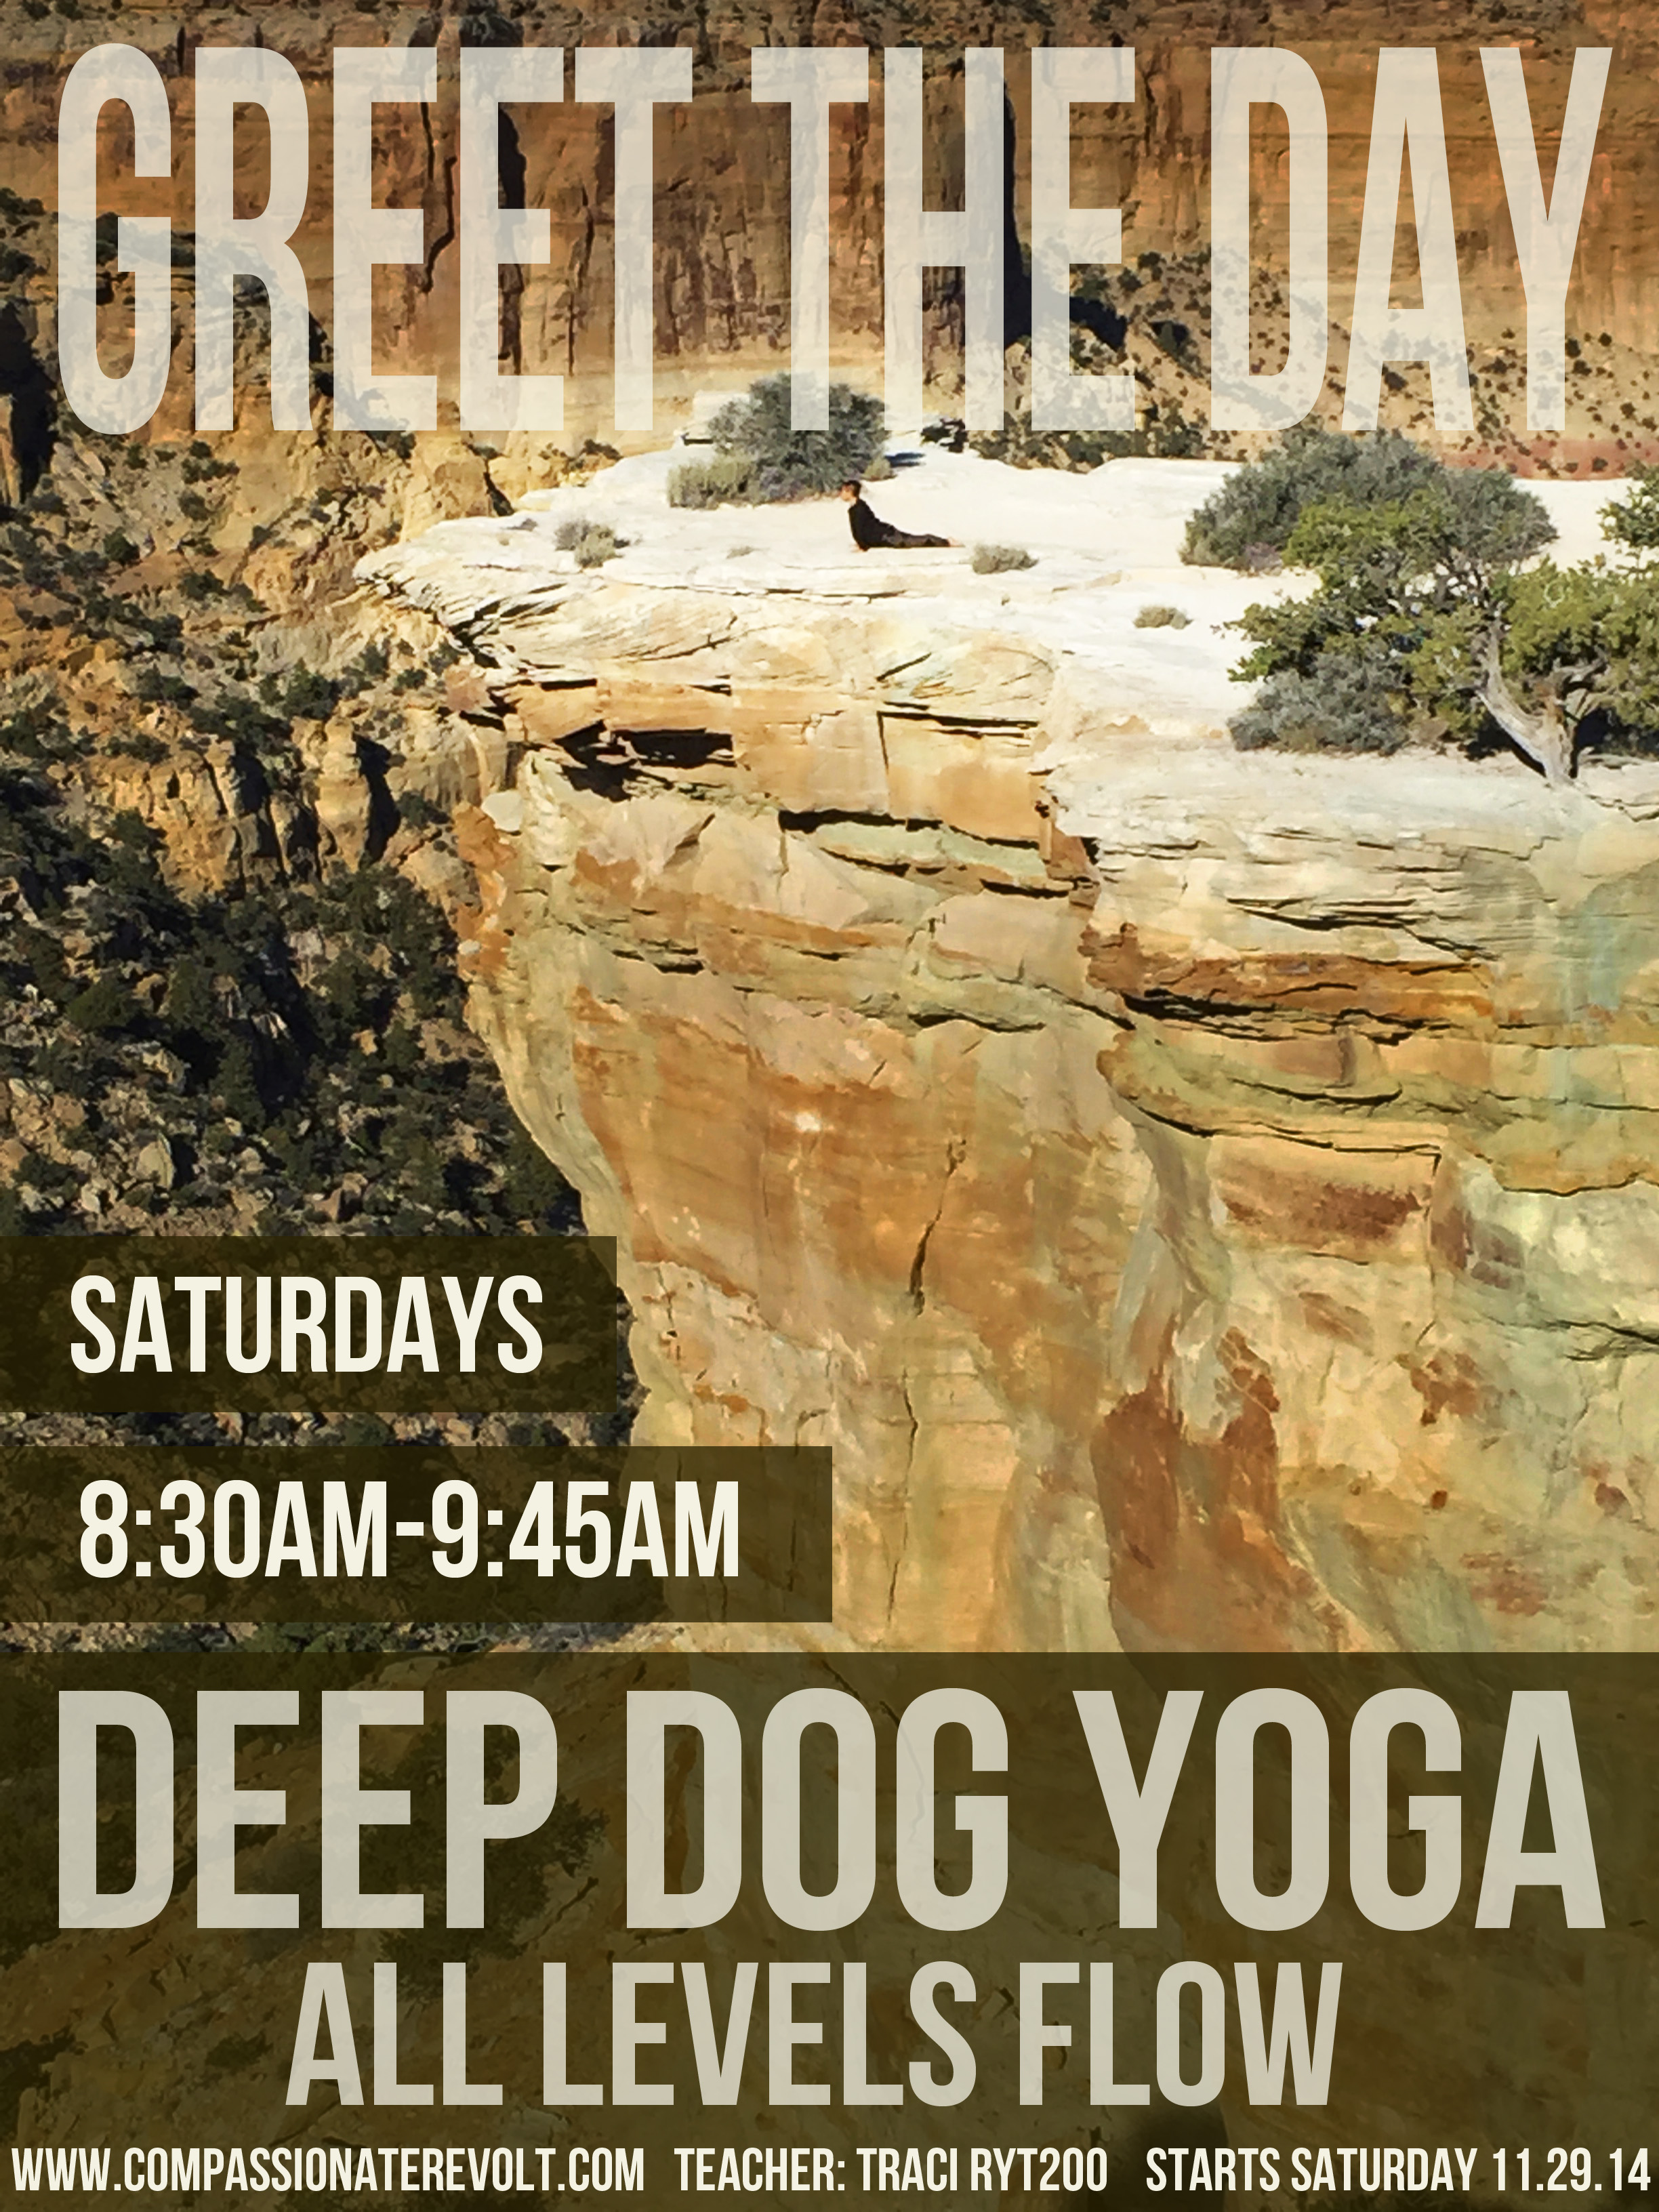 Janet Riley Subbing, This Wednesday, 10/14/15 @ 9am, Deep Dog Yoga Event Link: HERE